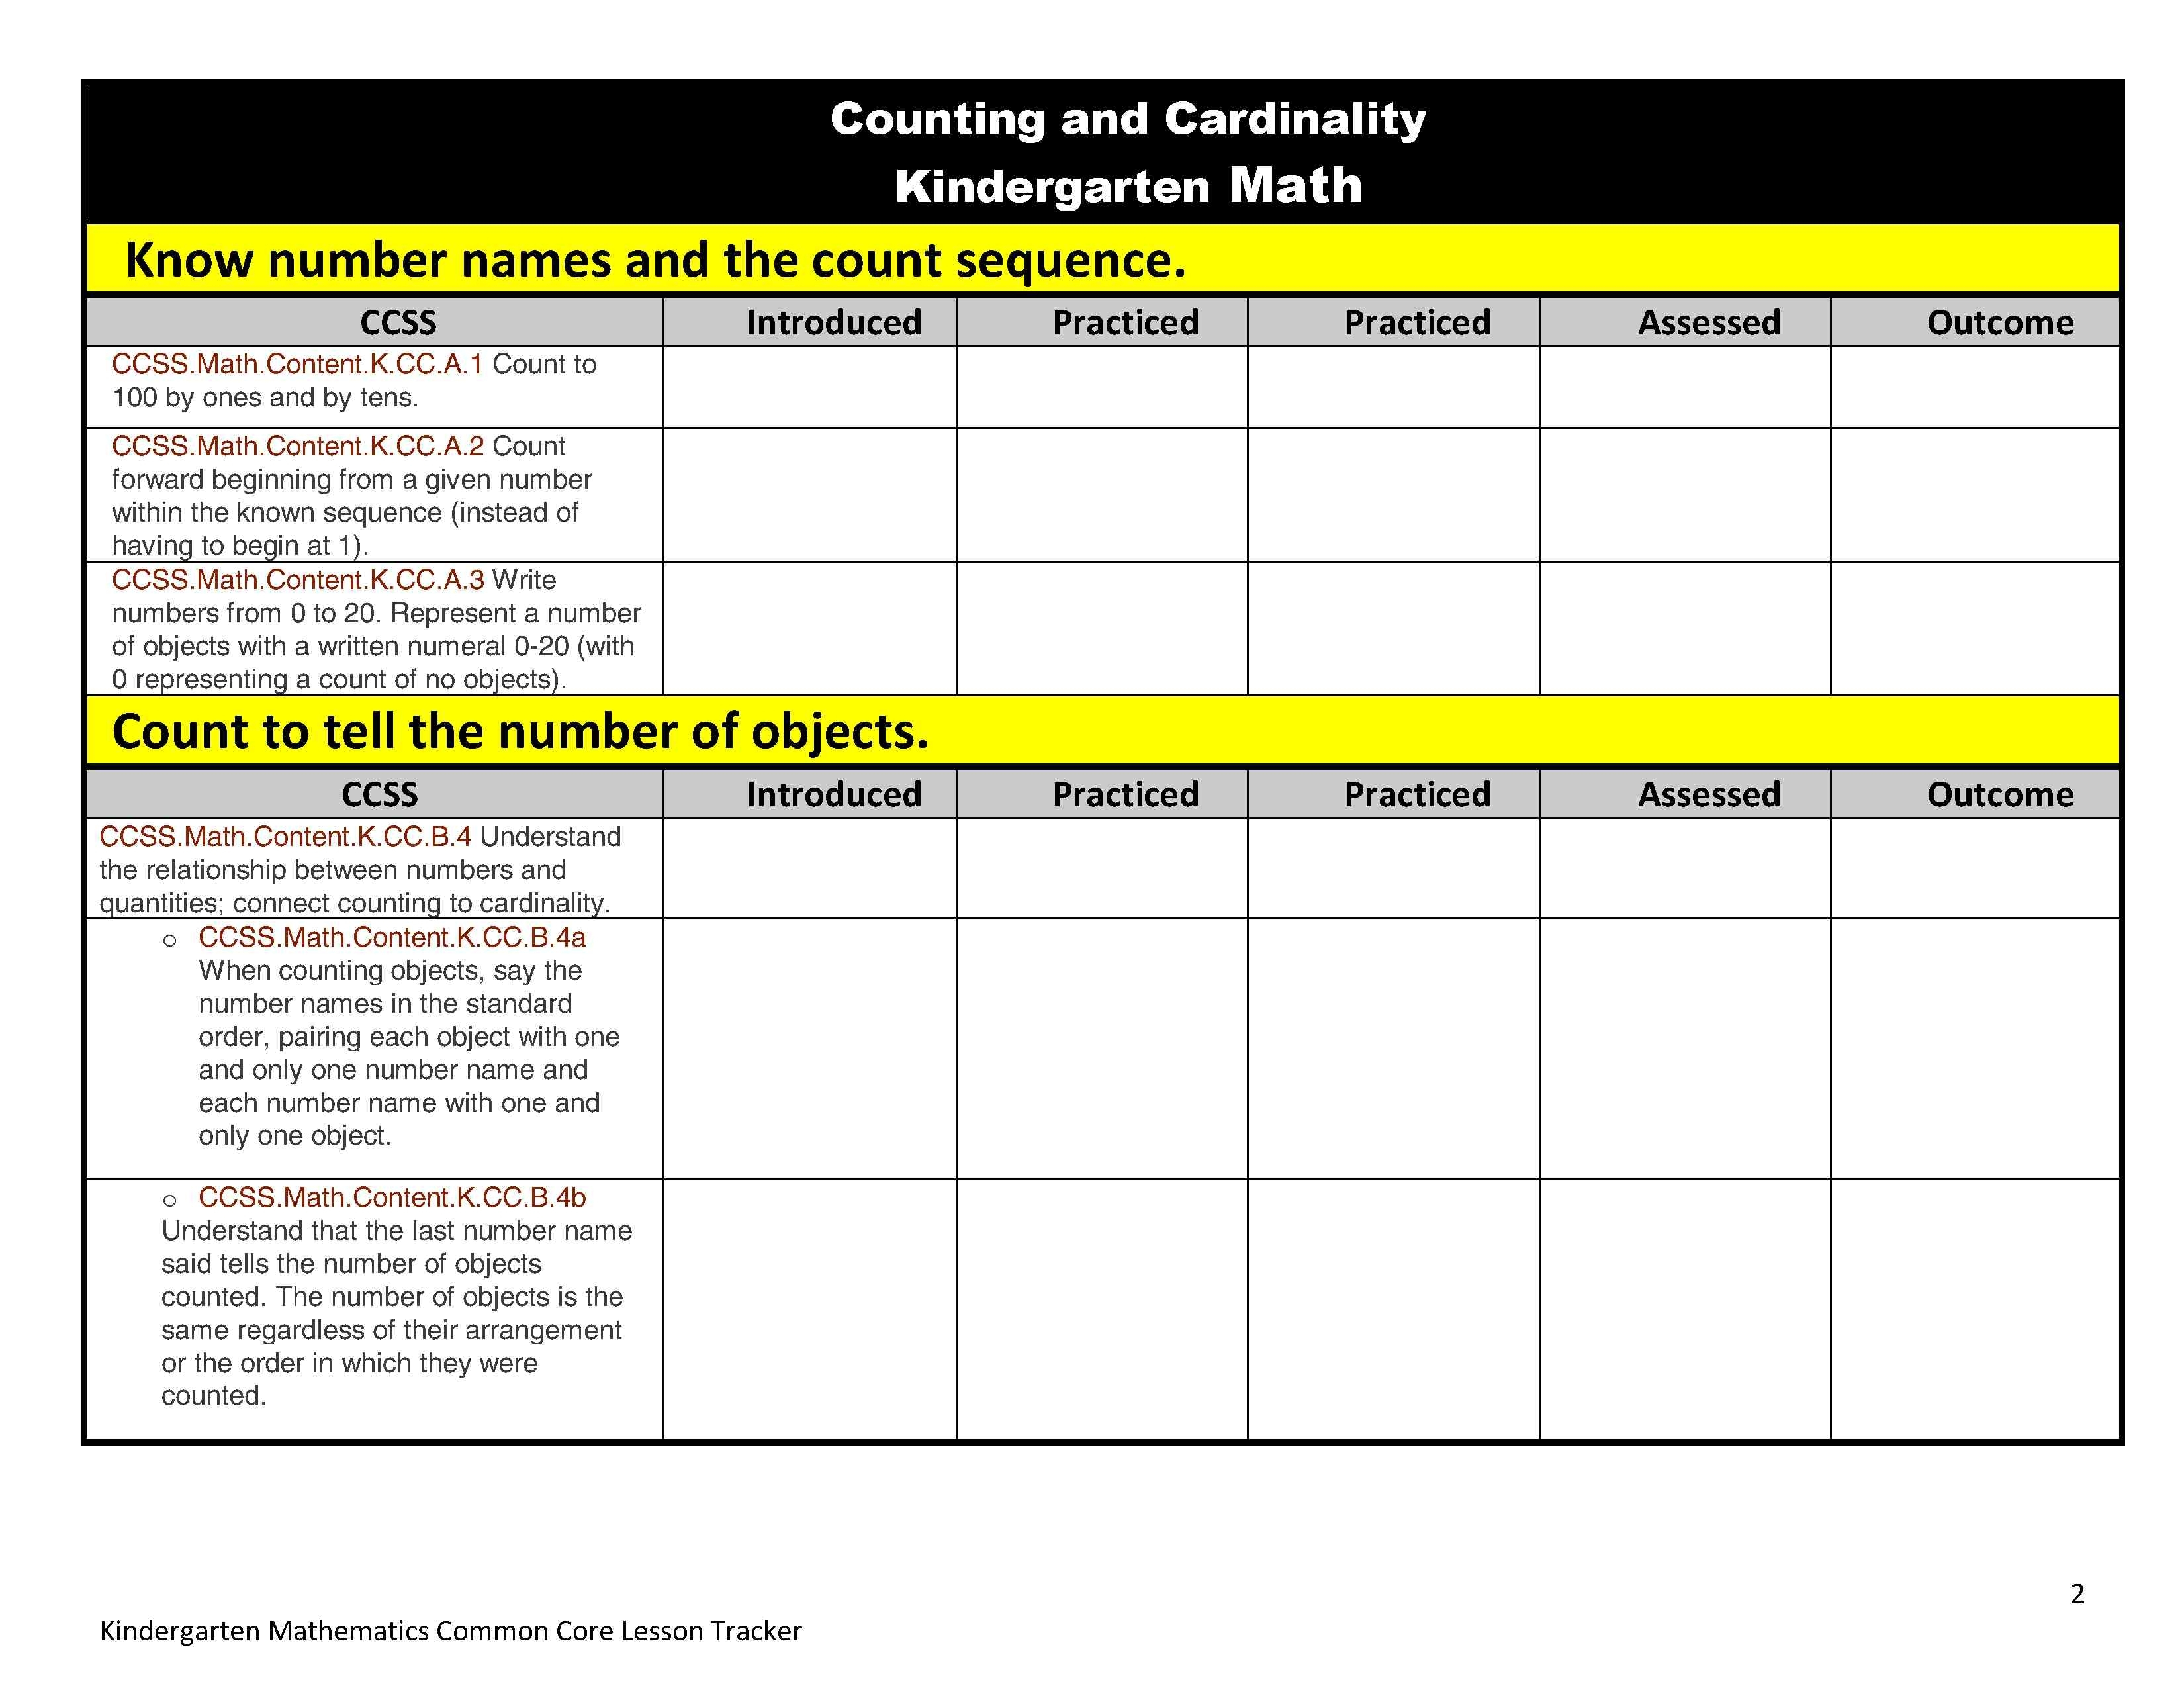 Spreadsheet Lesson Plans For High School - Page 1 - 45 77 186 115 in Spreadsheet Lesson Plans For High School